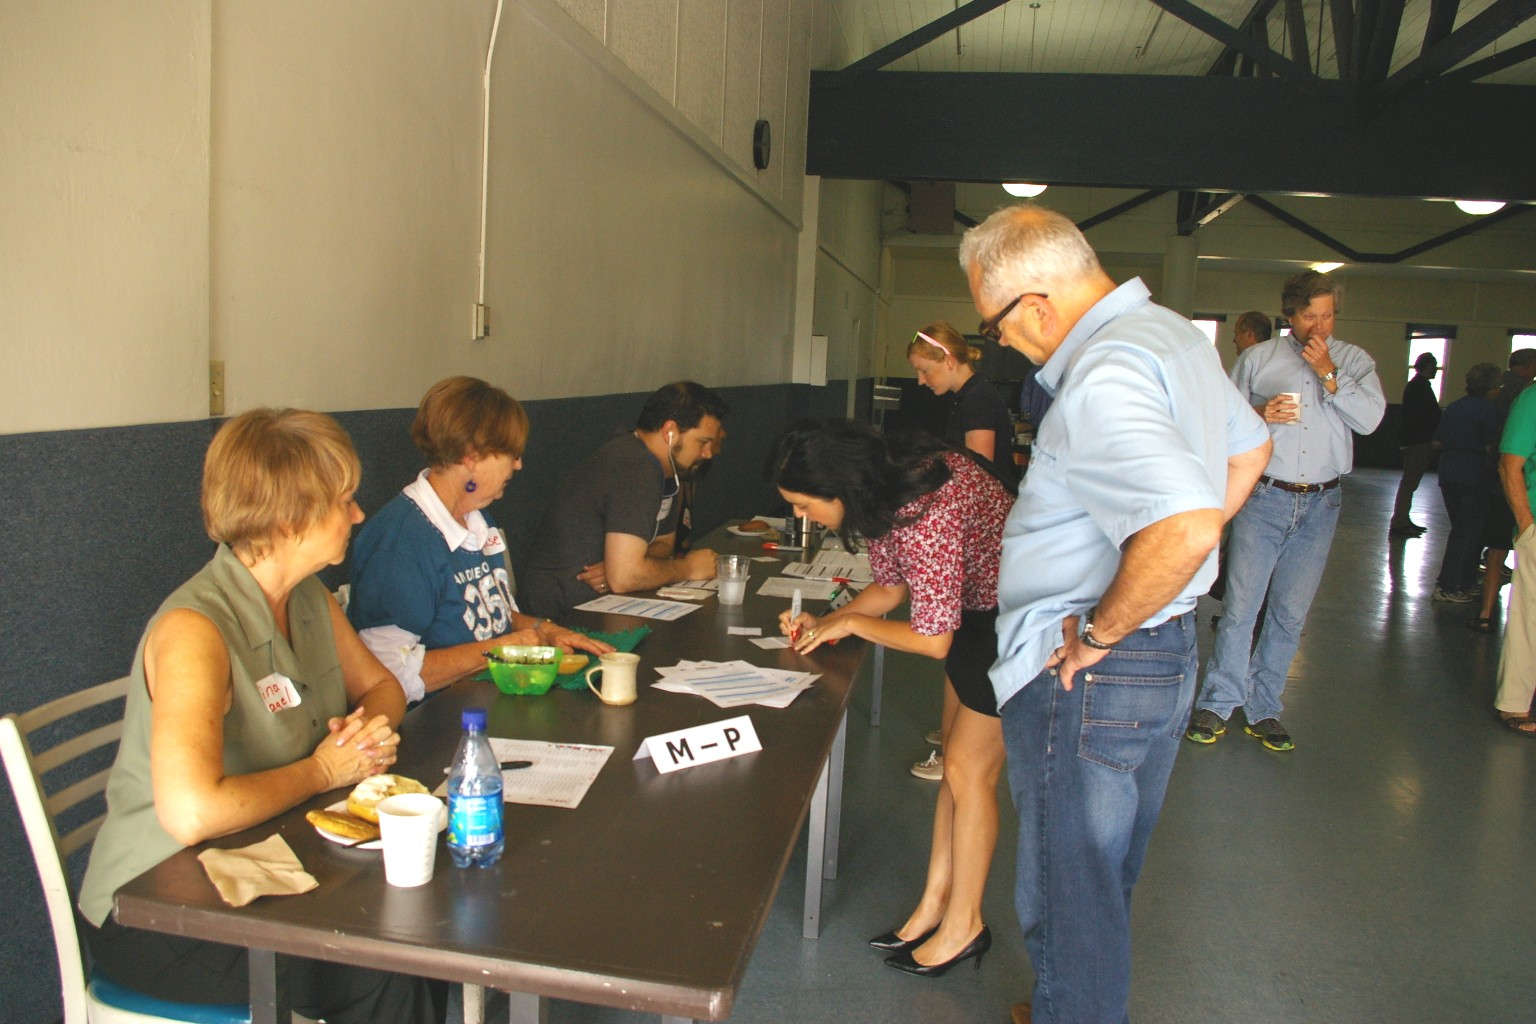 Tina Nagel, Louise Russell and Kevin Perkins signing folks in